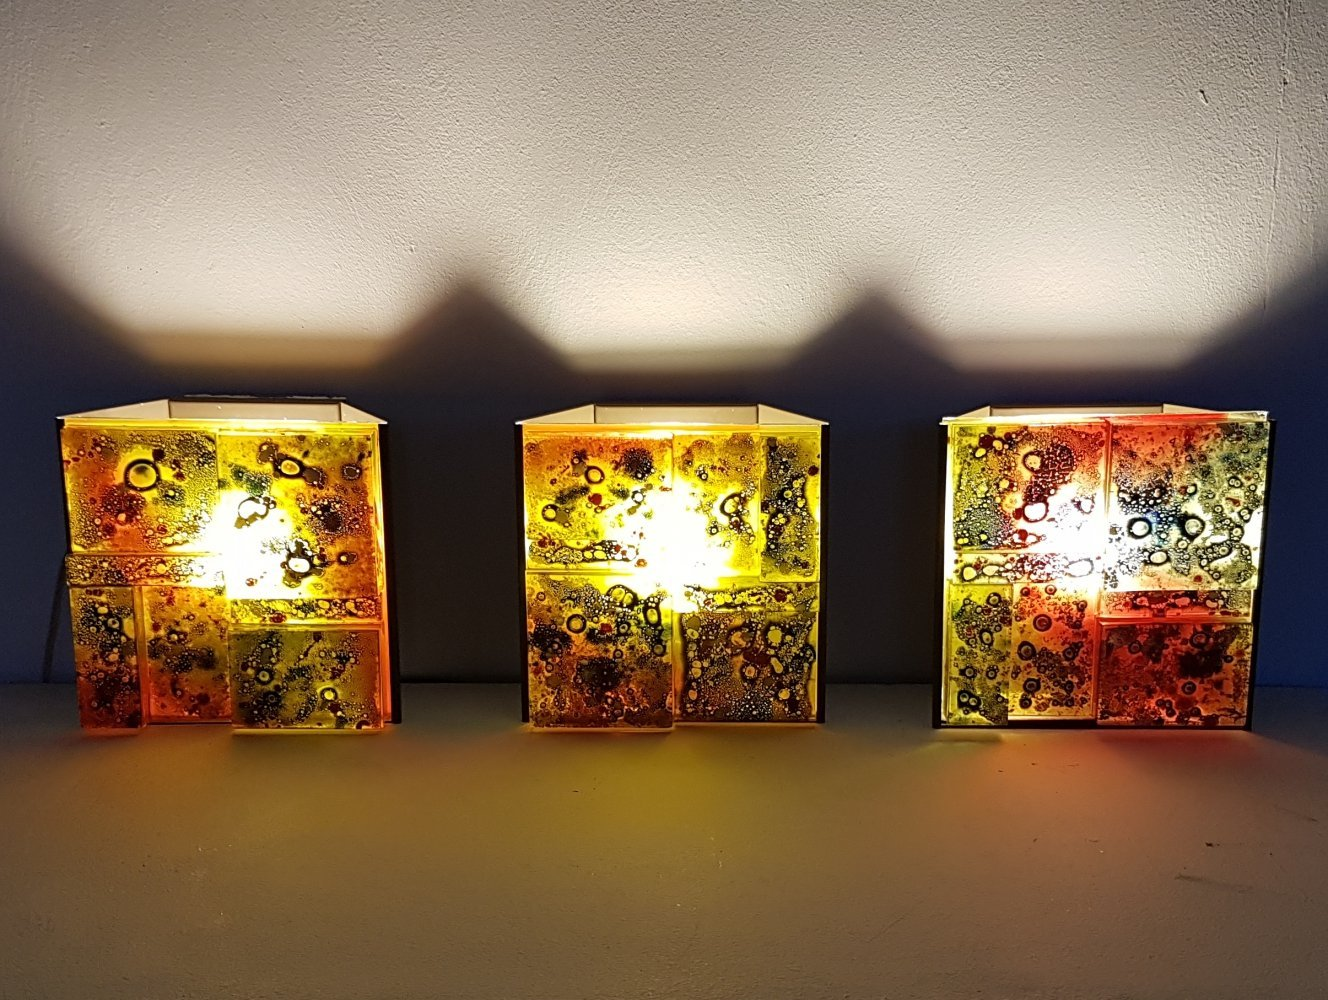 3 x coloured glass wall sconces lamps by Willem van Oyen for Raak, 1960s